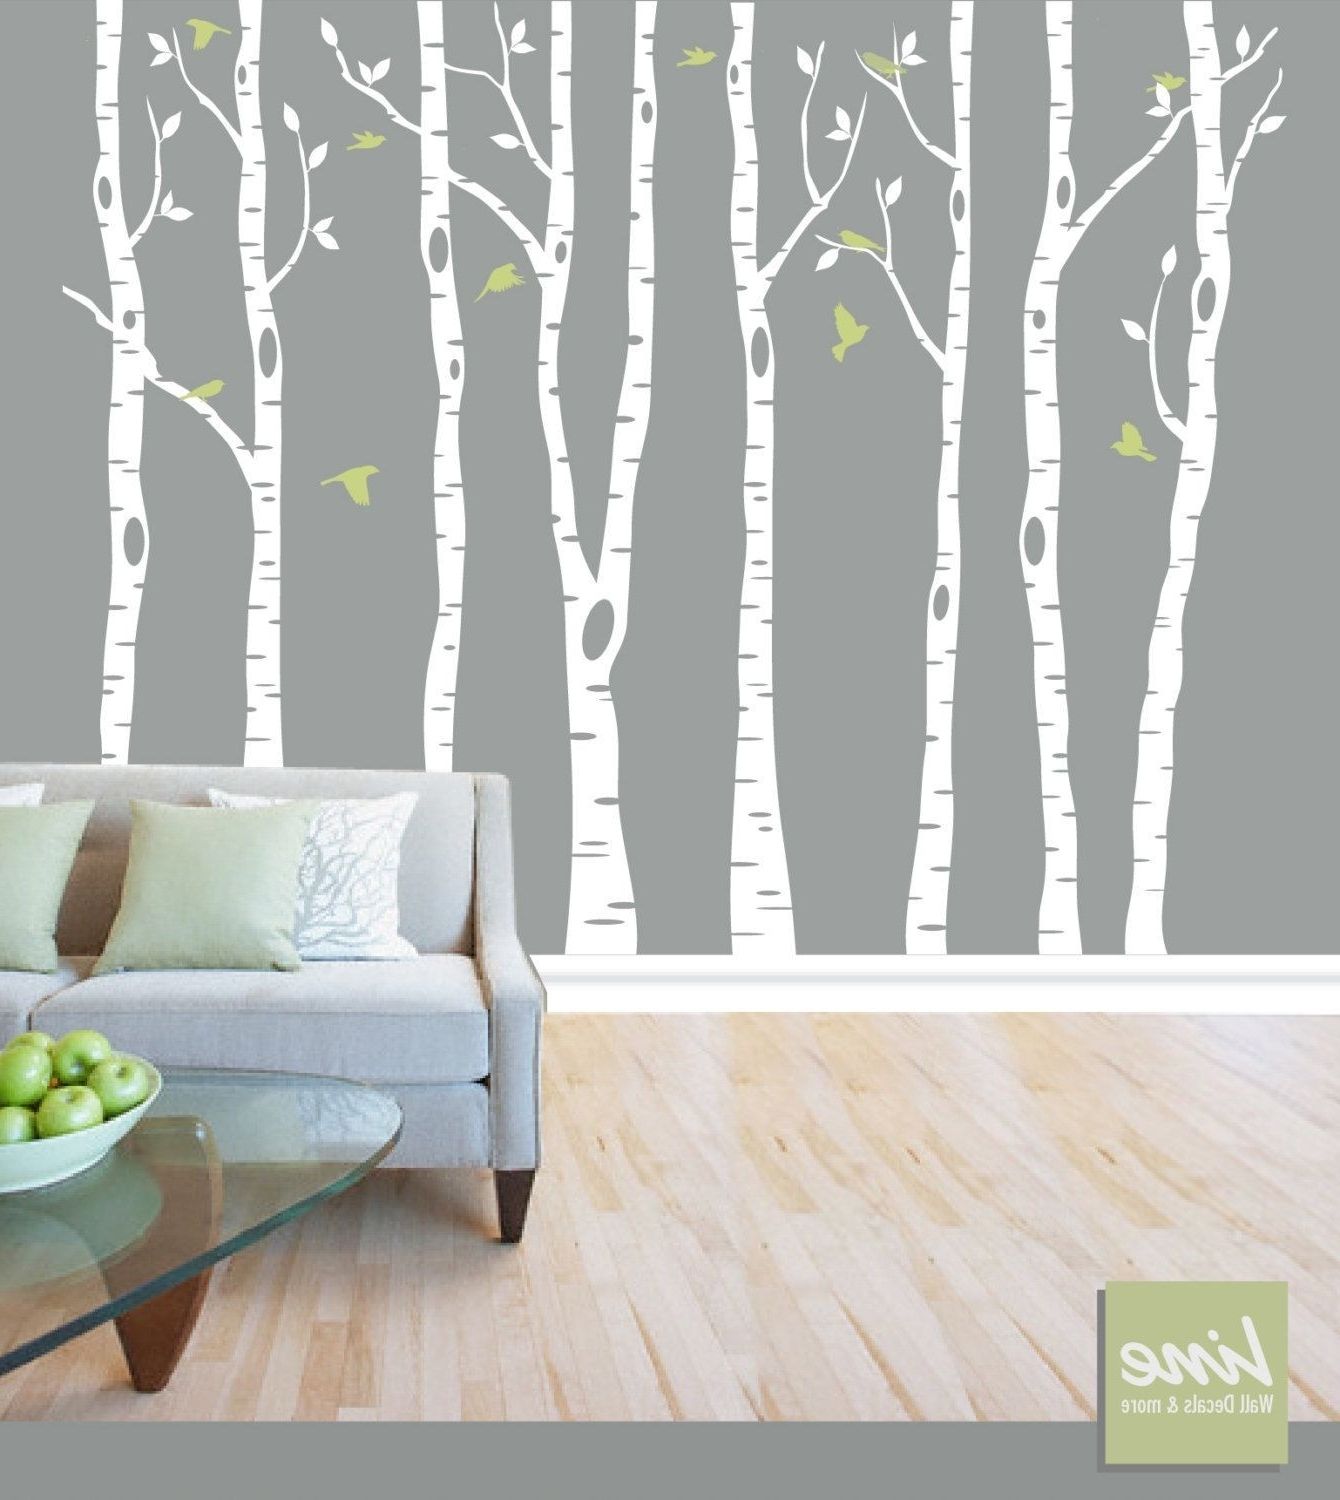 Most Popular Birch Tree Wall Decal Hobby Lobby Awesome Modern Birch Wall Decor Pertaining To Birch Tree Wall Art (View 9 of 15)